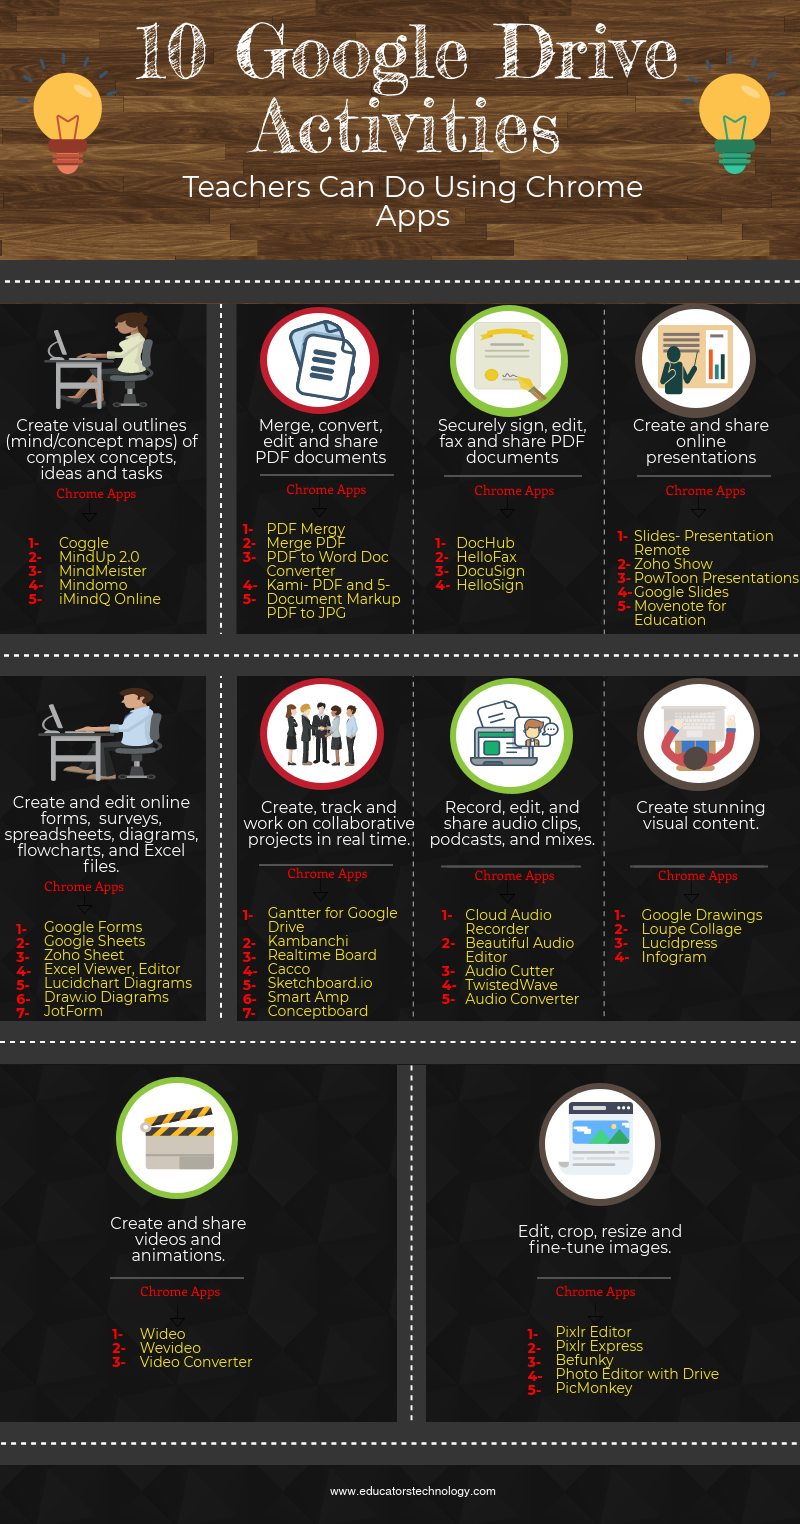 10 Important Activities Teachers Should Be Able to Do on Google Drive